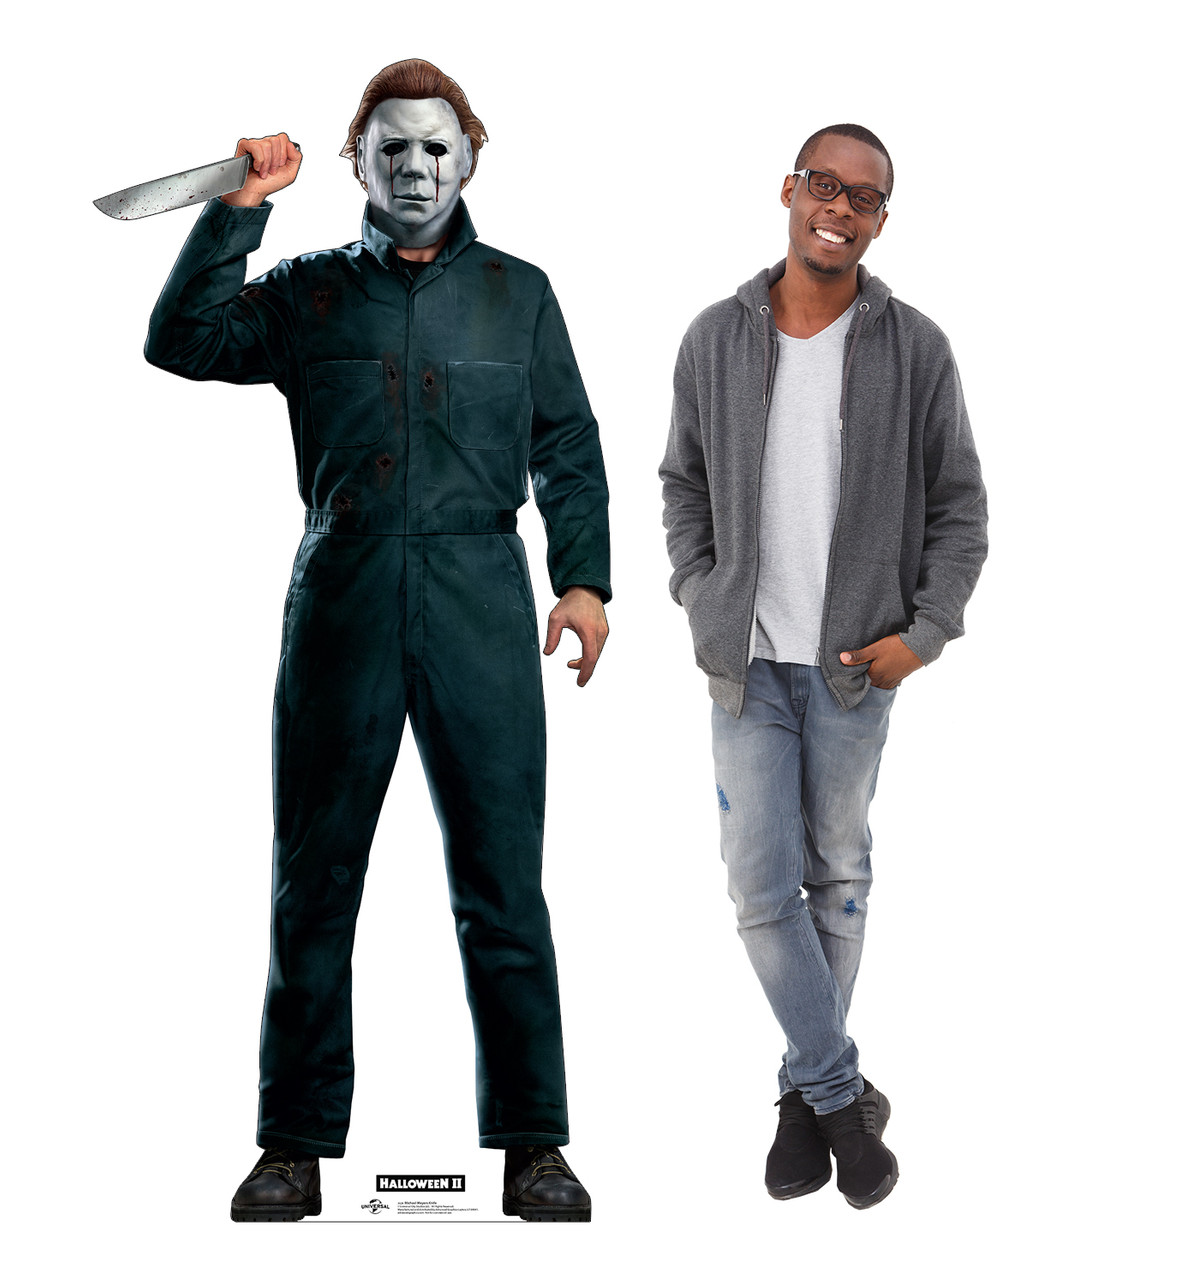 Life-size cardboard standee of Michael Myers with knife from Halloween II movie with model.